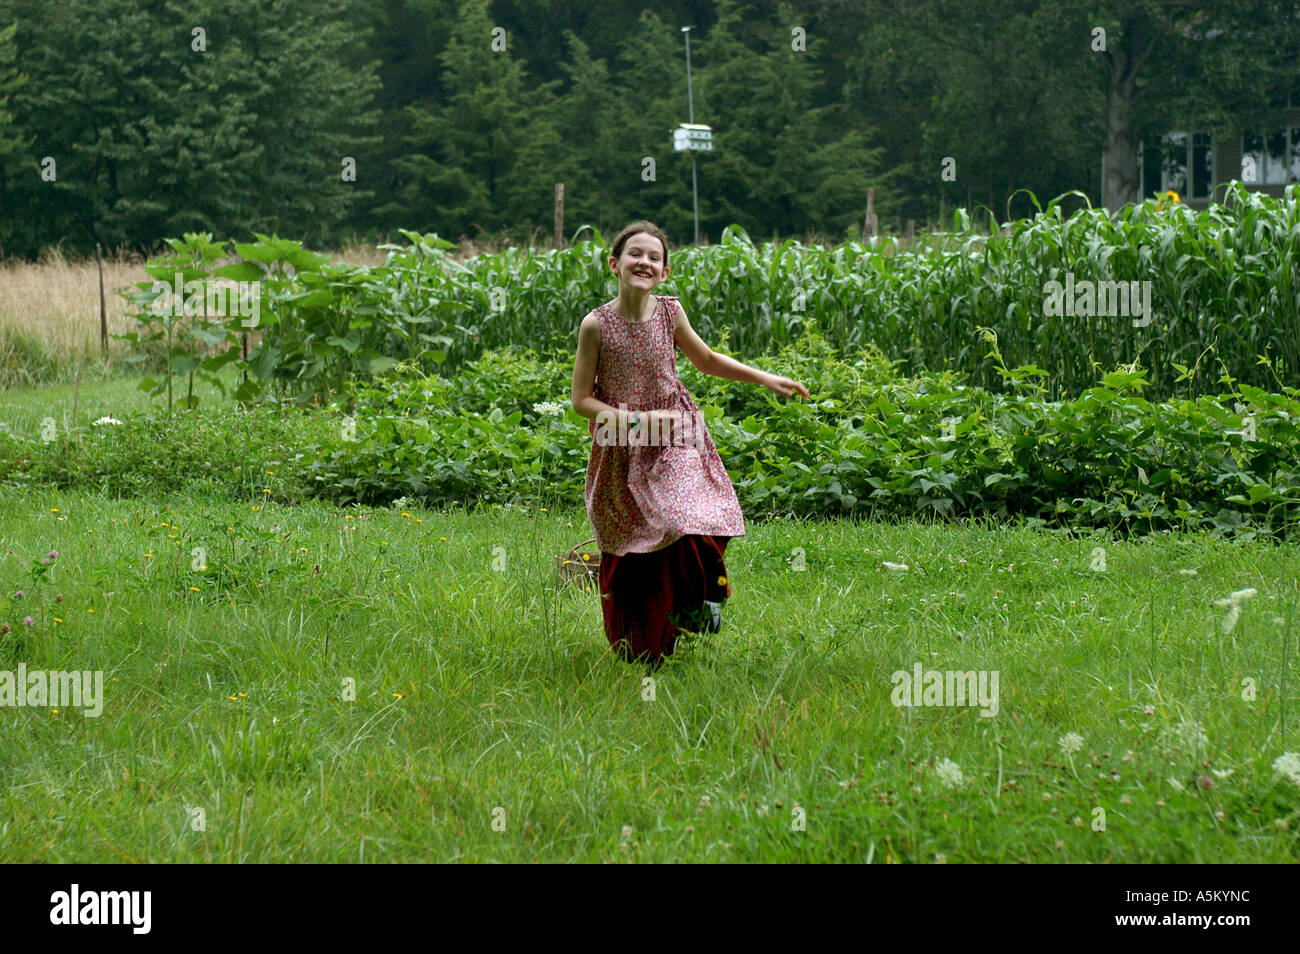 cf0a2513b18 An eleven year old girl wearing a pioneer style dress runs freely through a  lush green